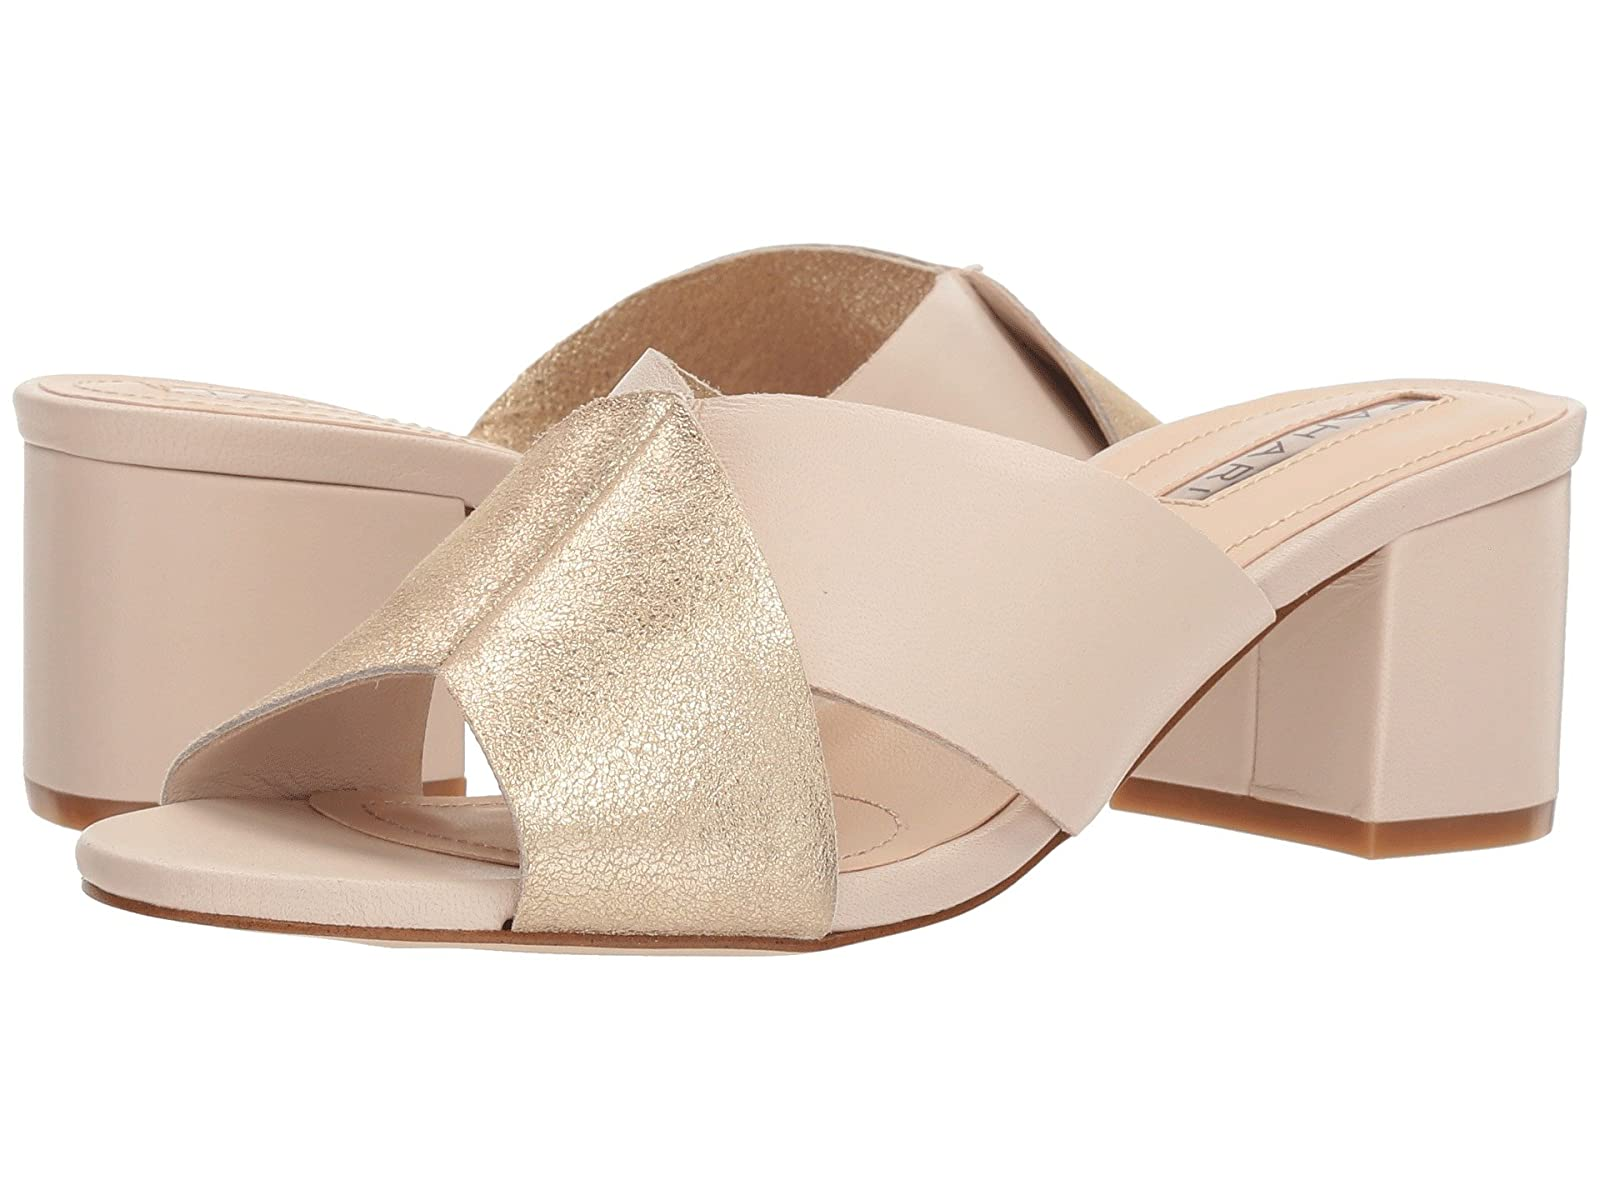 Tahari DoverAtmospheric grades have affordable shoes